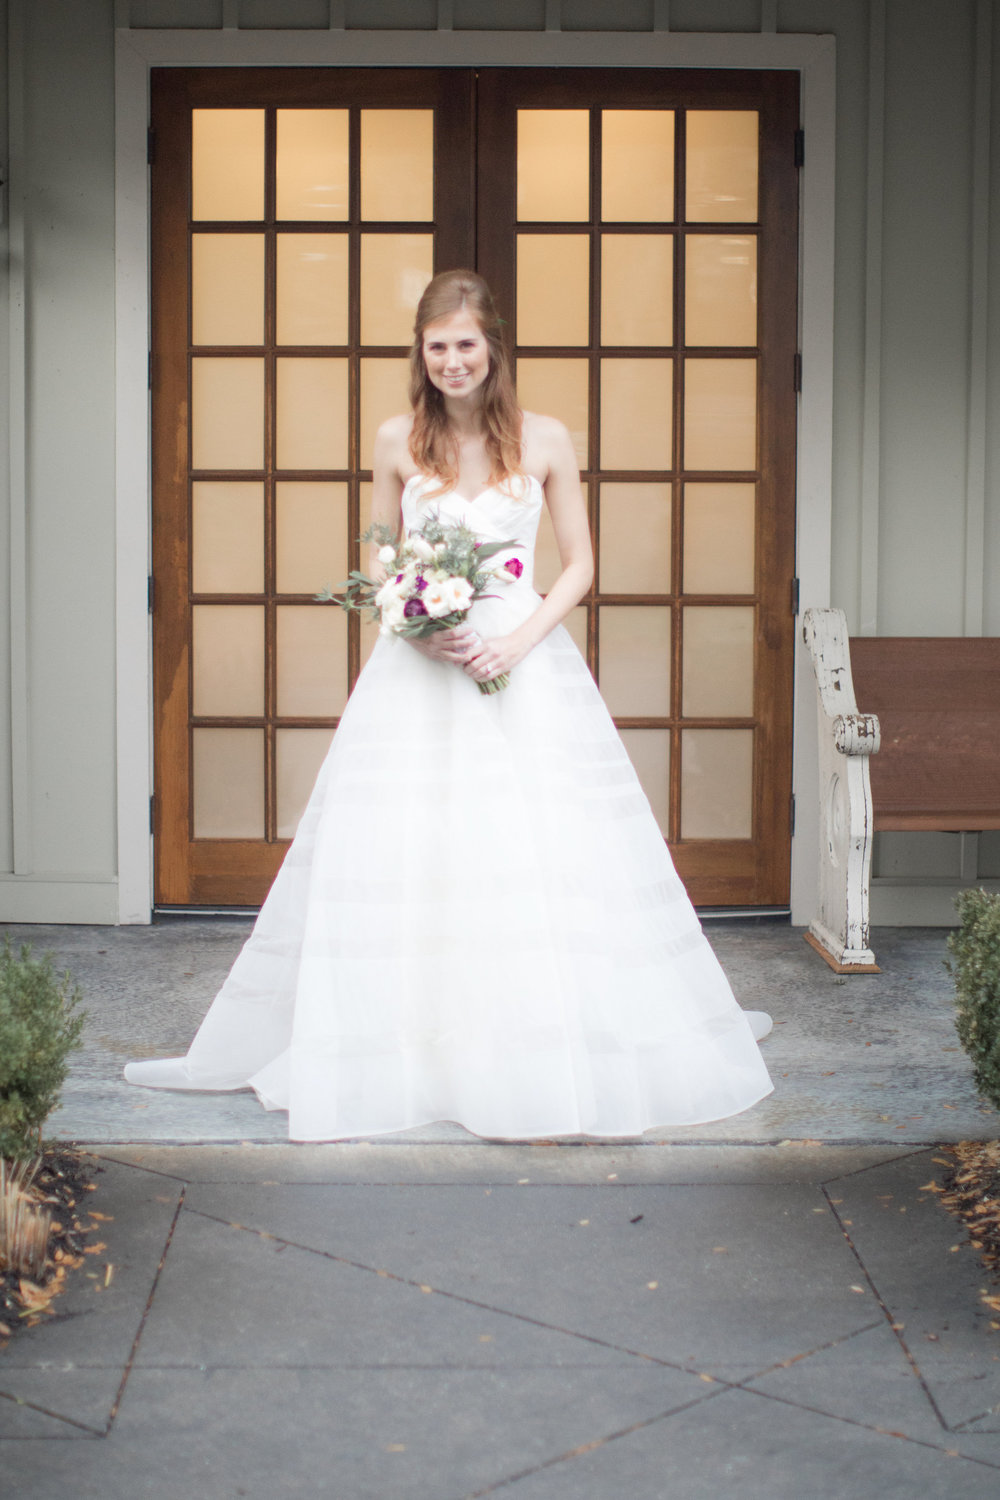 Wedding Inspiration: Bridal Fashion Shoot at Coleman Hall, Mount Pleasant, South Carolina | Palmetto State Weddings